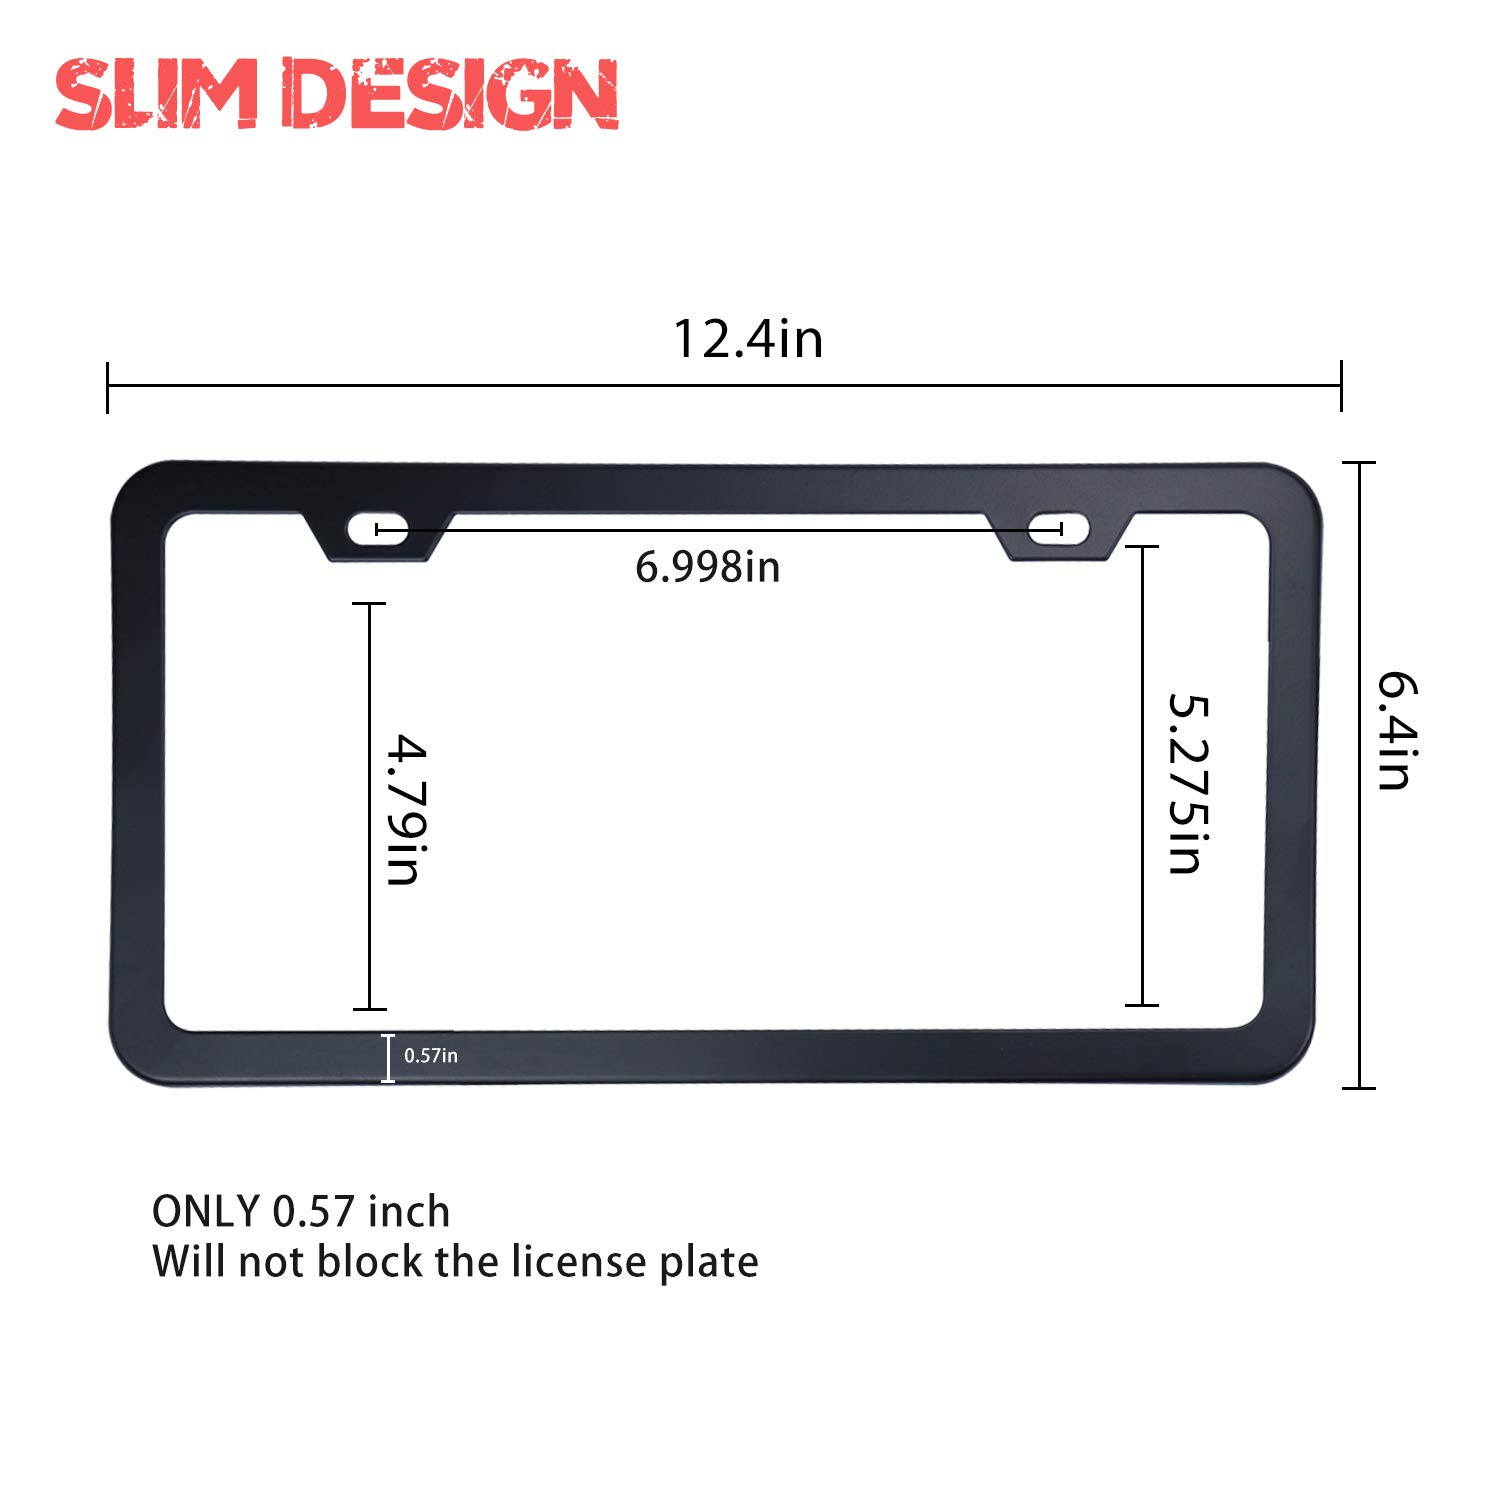 Motorup America Carbon Fiber License Plate Frame Best for Front /& Rear Pack of 2 Auto Accessories Fits Select Vehicles Car Truck Van SUV Bumper Cover Tag Holder